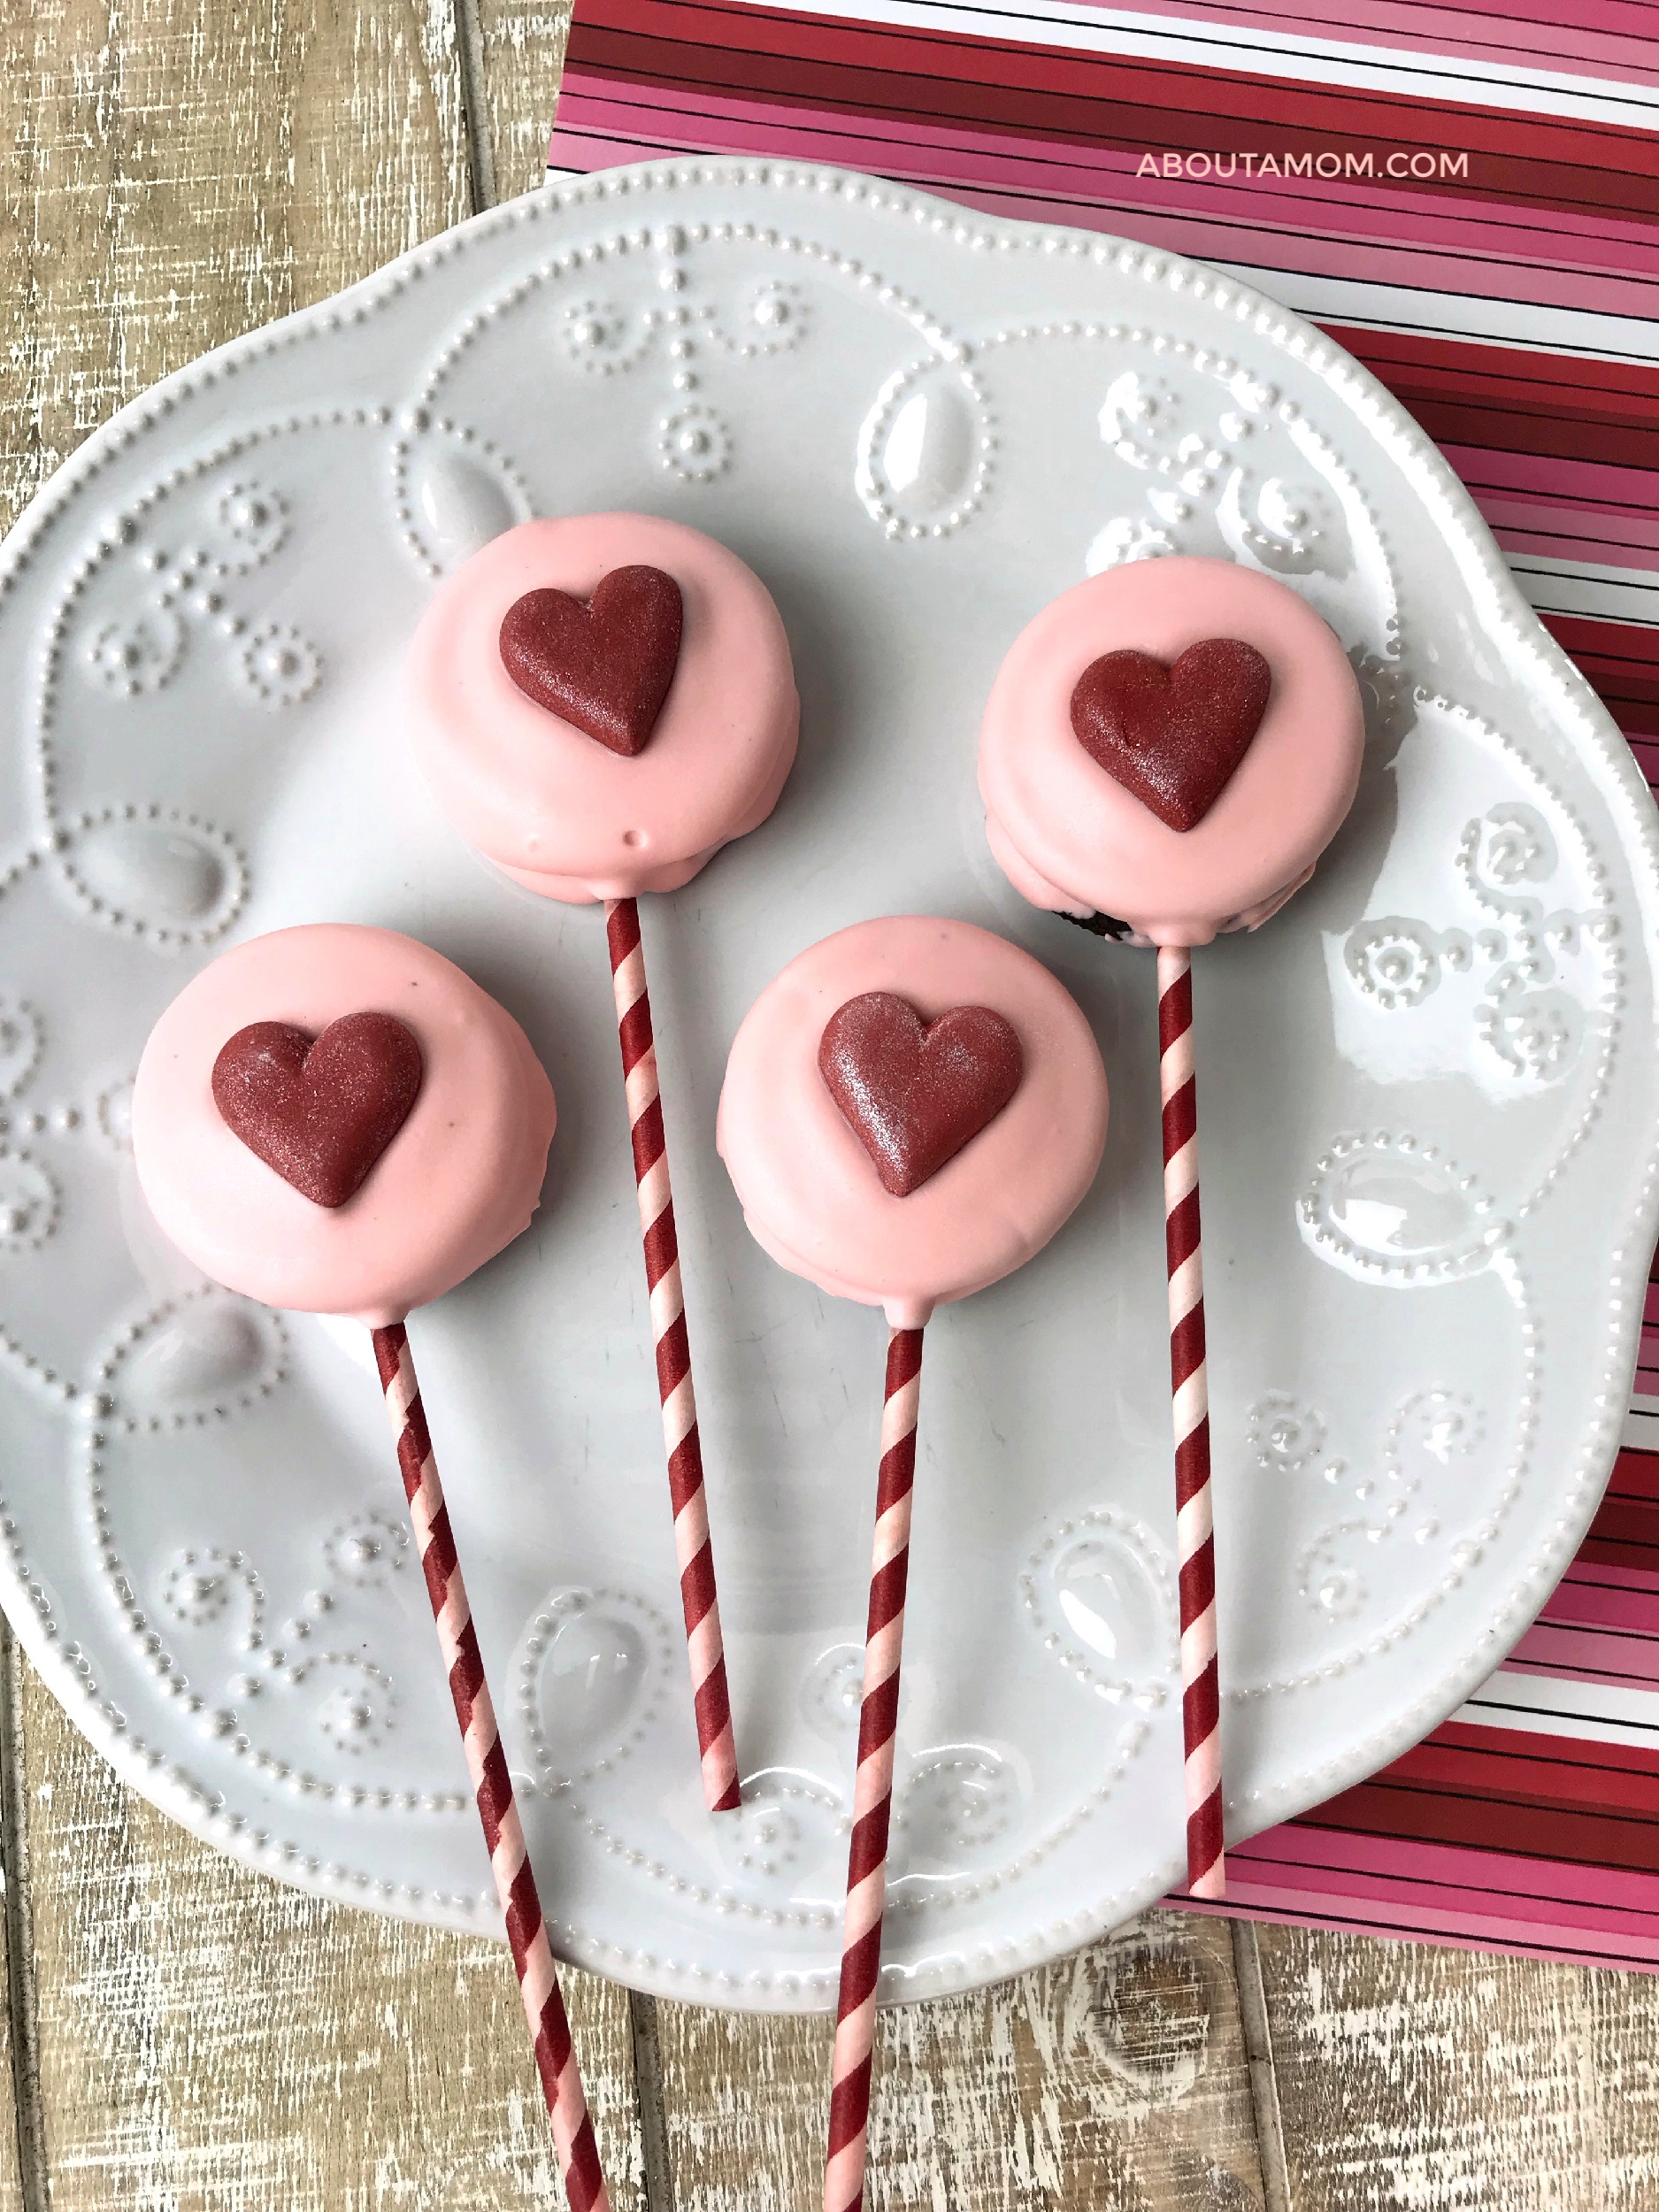 Need a simple Valentine's Day dessert or treat? OREO Pops are one of my favorite no-bake treats. Make this super easy Valentine's Day OREO Pops Treat for your sweetheart, children's classmates or anyone you want to feel especial on Valentine's Day.